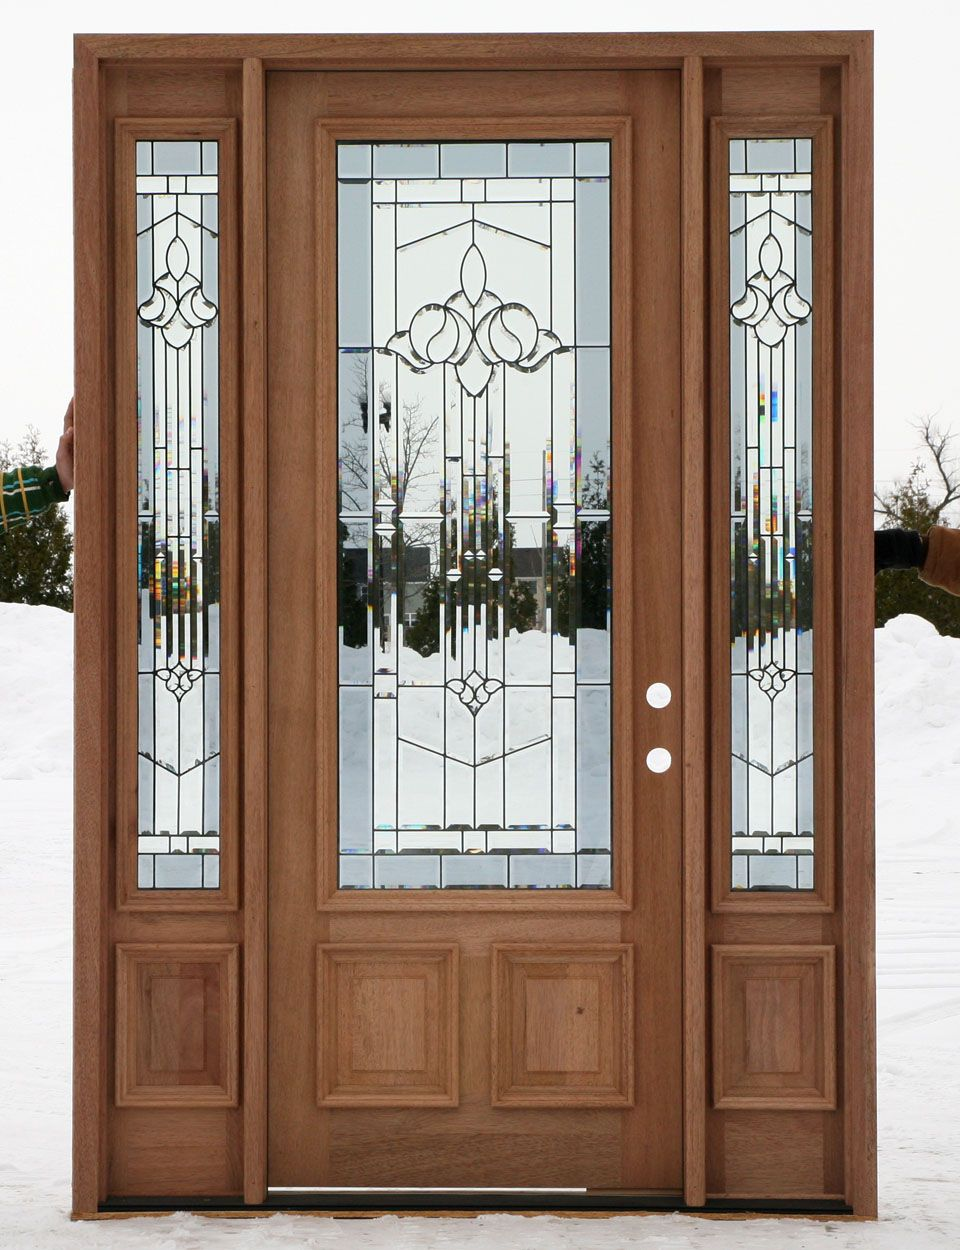 affordable front doors with sidelights fully assembled and ready to install front doors for your home at the most affordable price